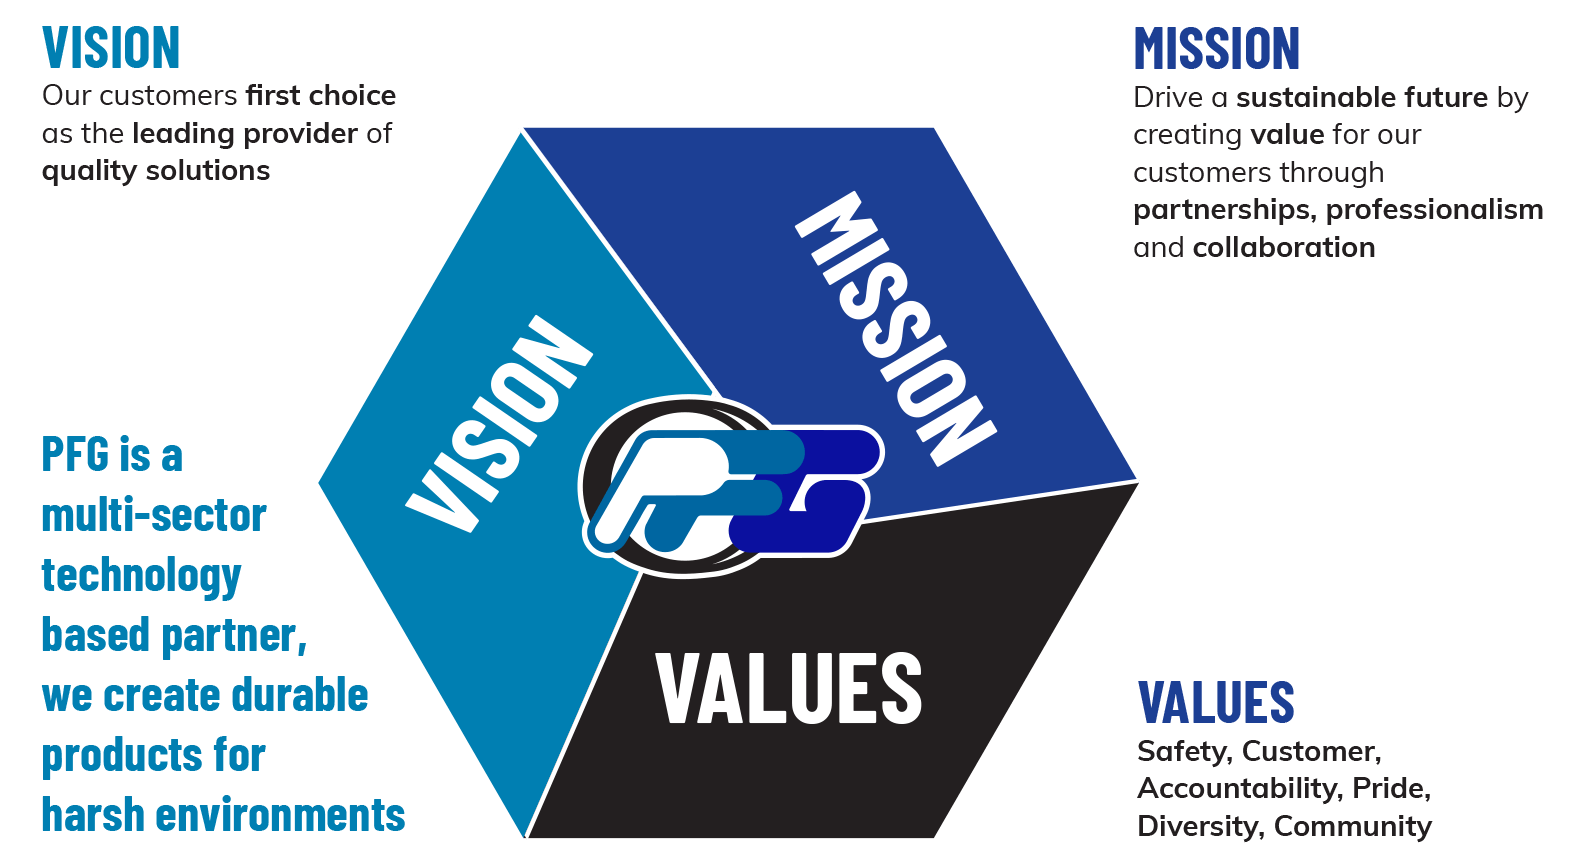 vision-mission-values-1